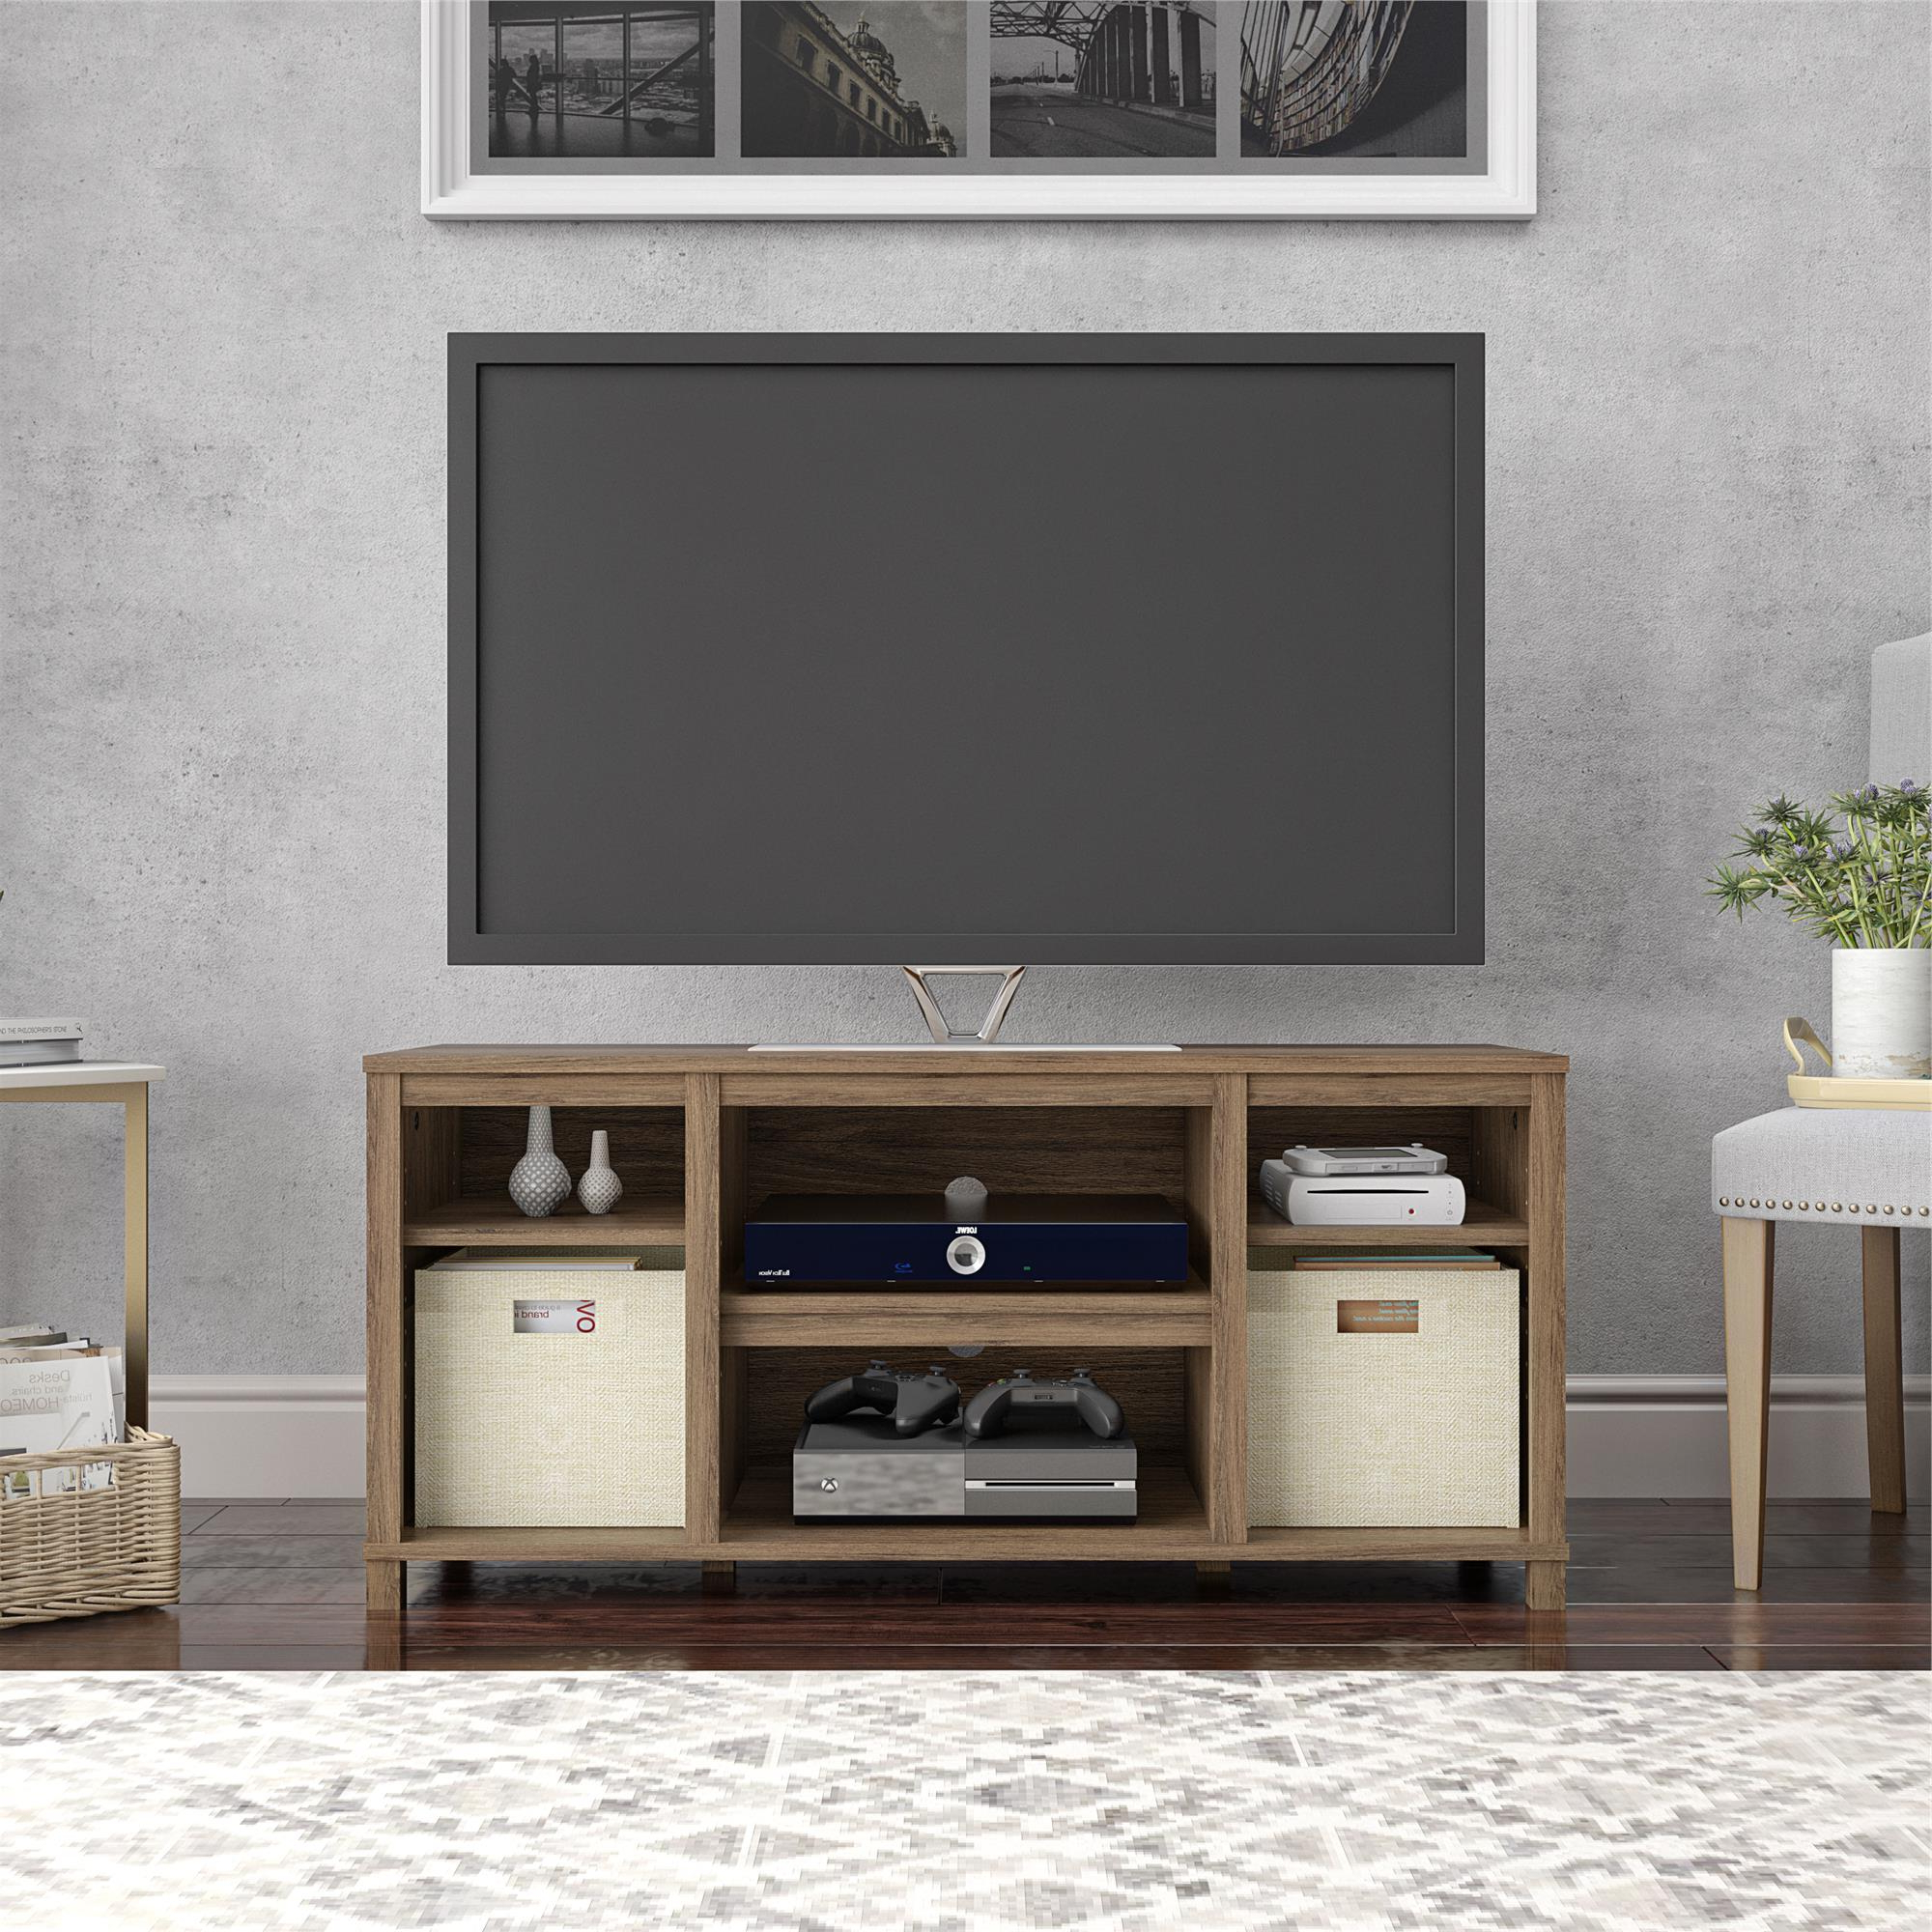 """Widely Used Virginia Tv Stands For Tvs Up To 50"""" In Mainstays Parsons Cubby Tv Stand For Tvs Up To 50"""", Rustic (View 7 of 25)"""